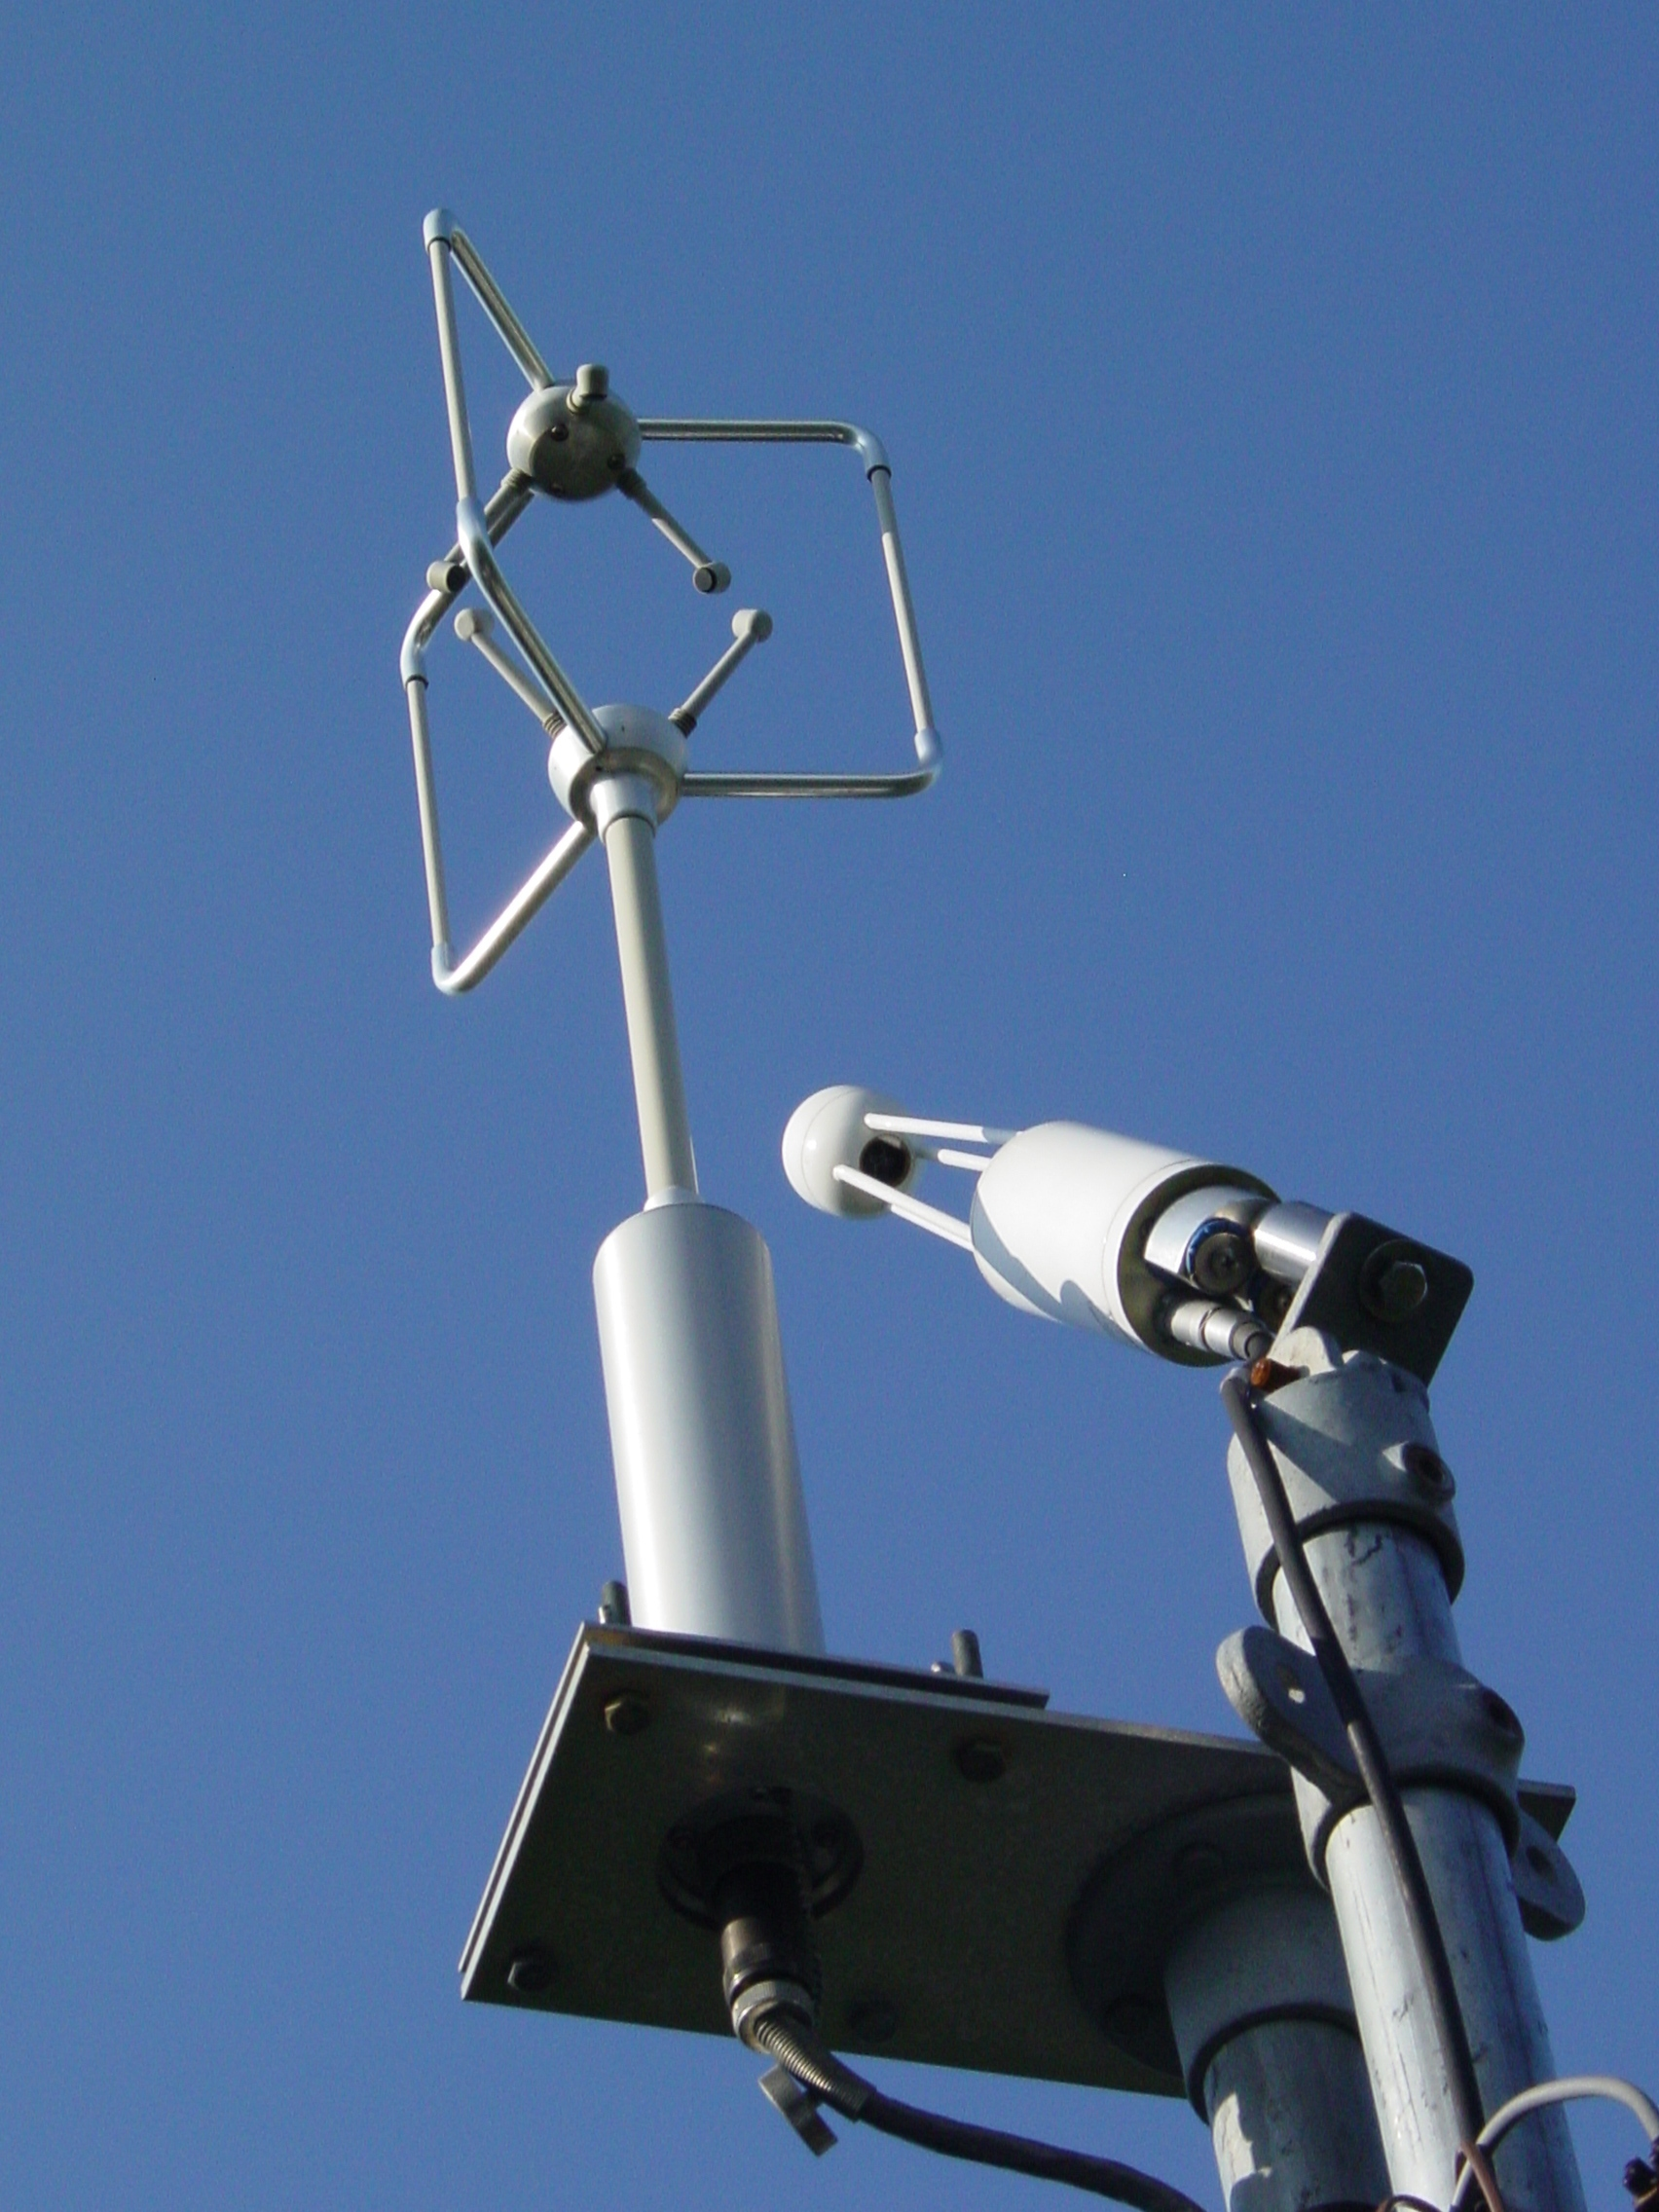 15 24 19 april 2013 eddy covariance irga file for Chambre a air 312 x 52 250